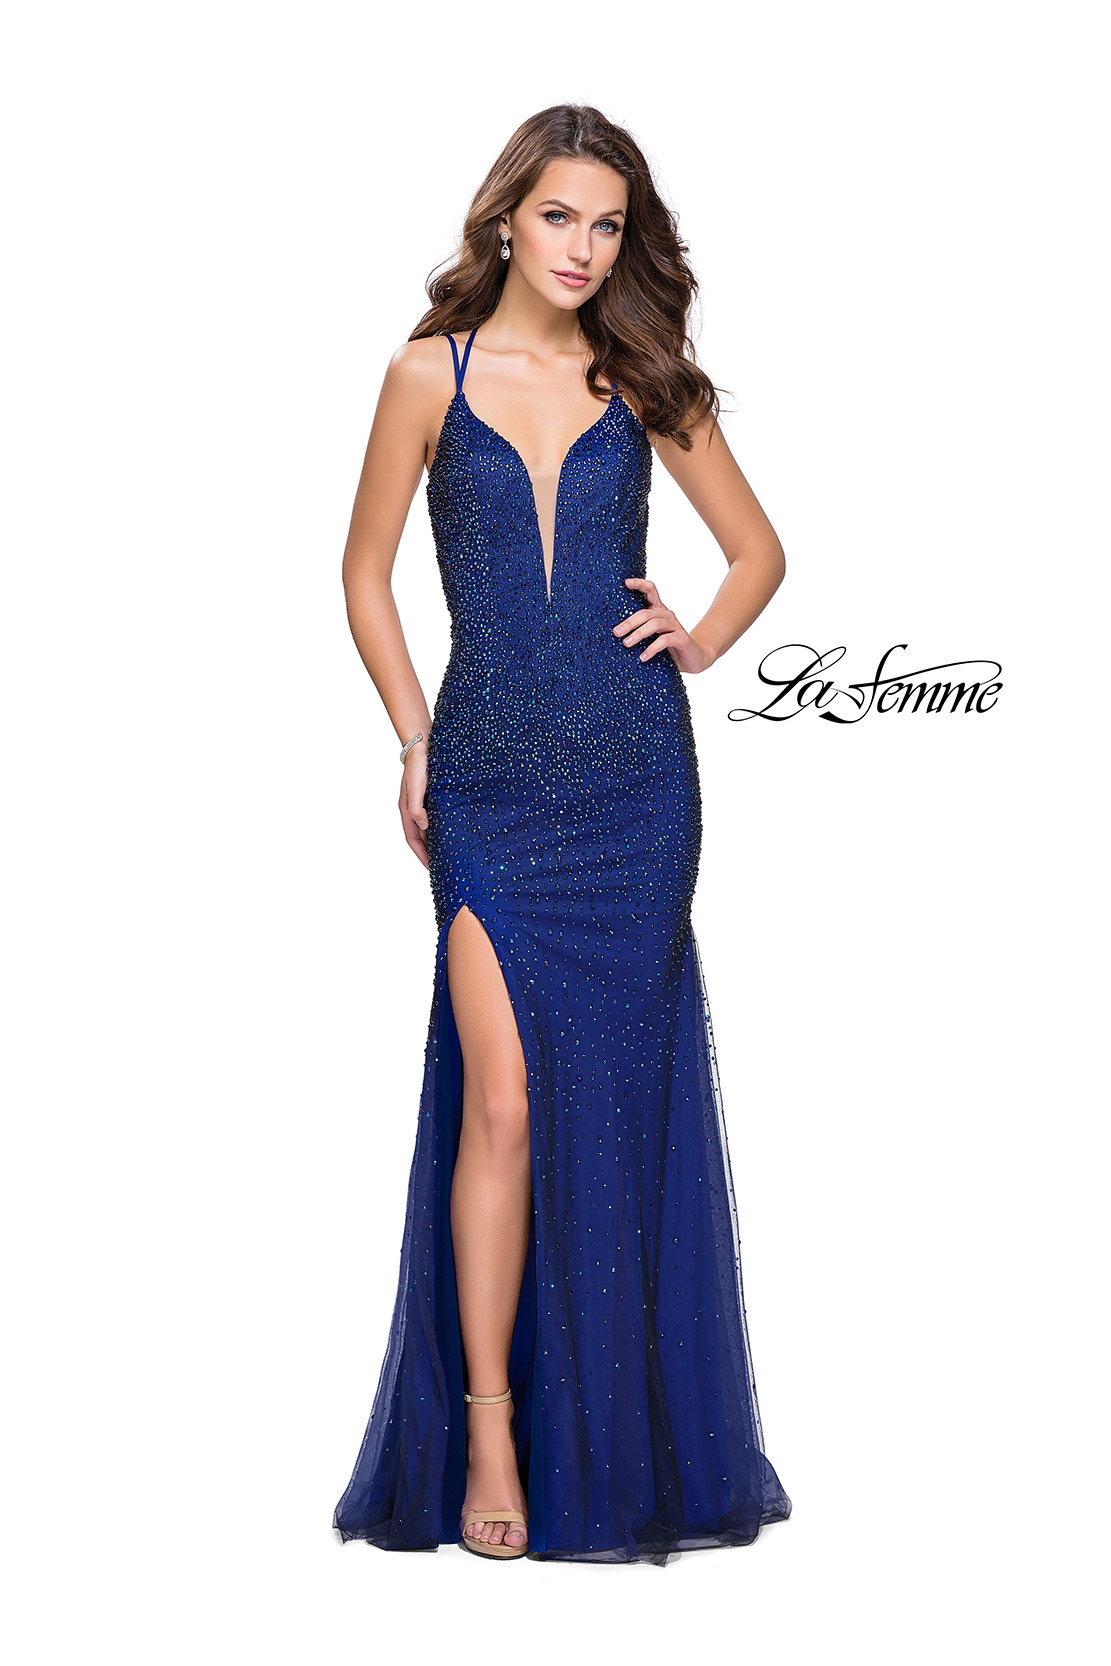 Black and Blue Prom Dress with Rhinestones by La Femme 26228